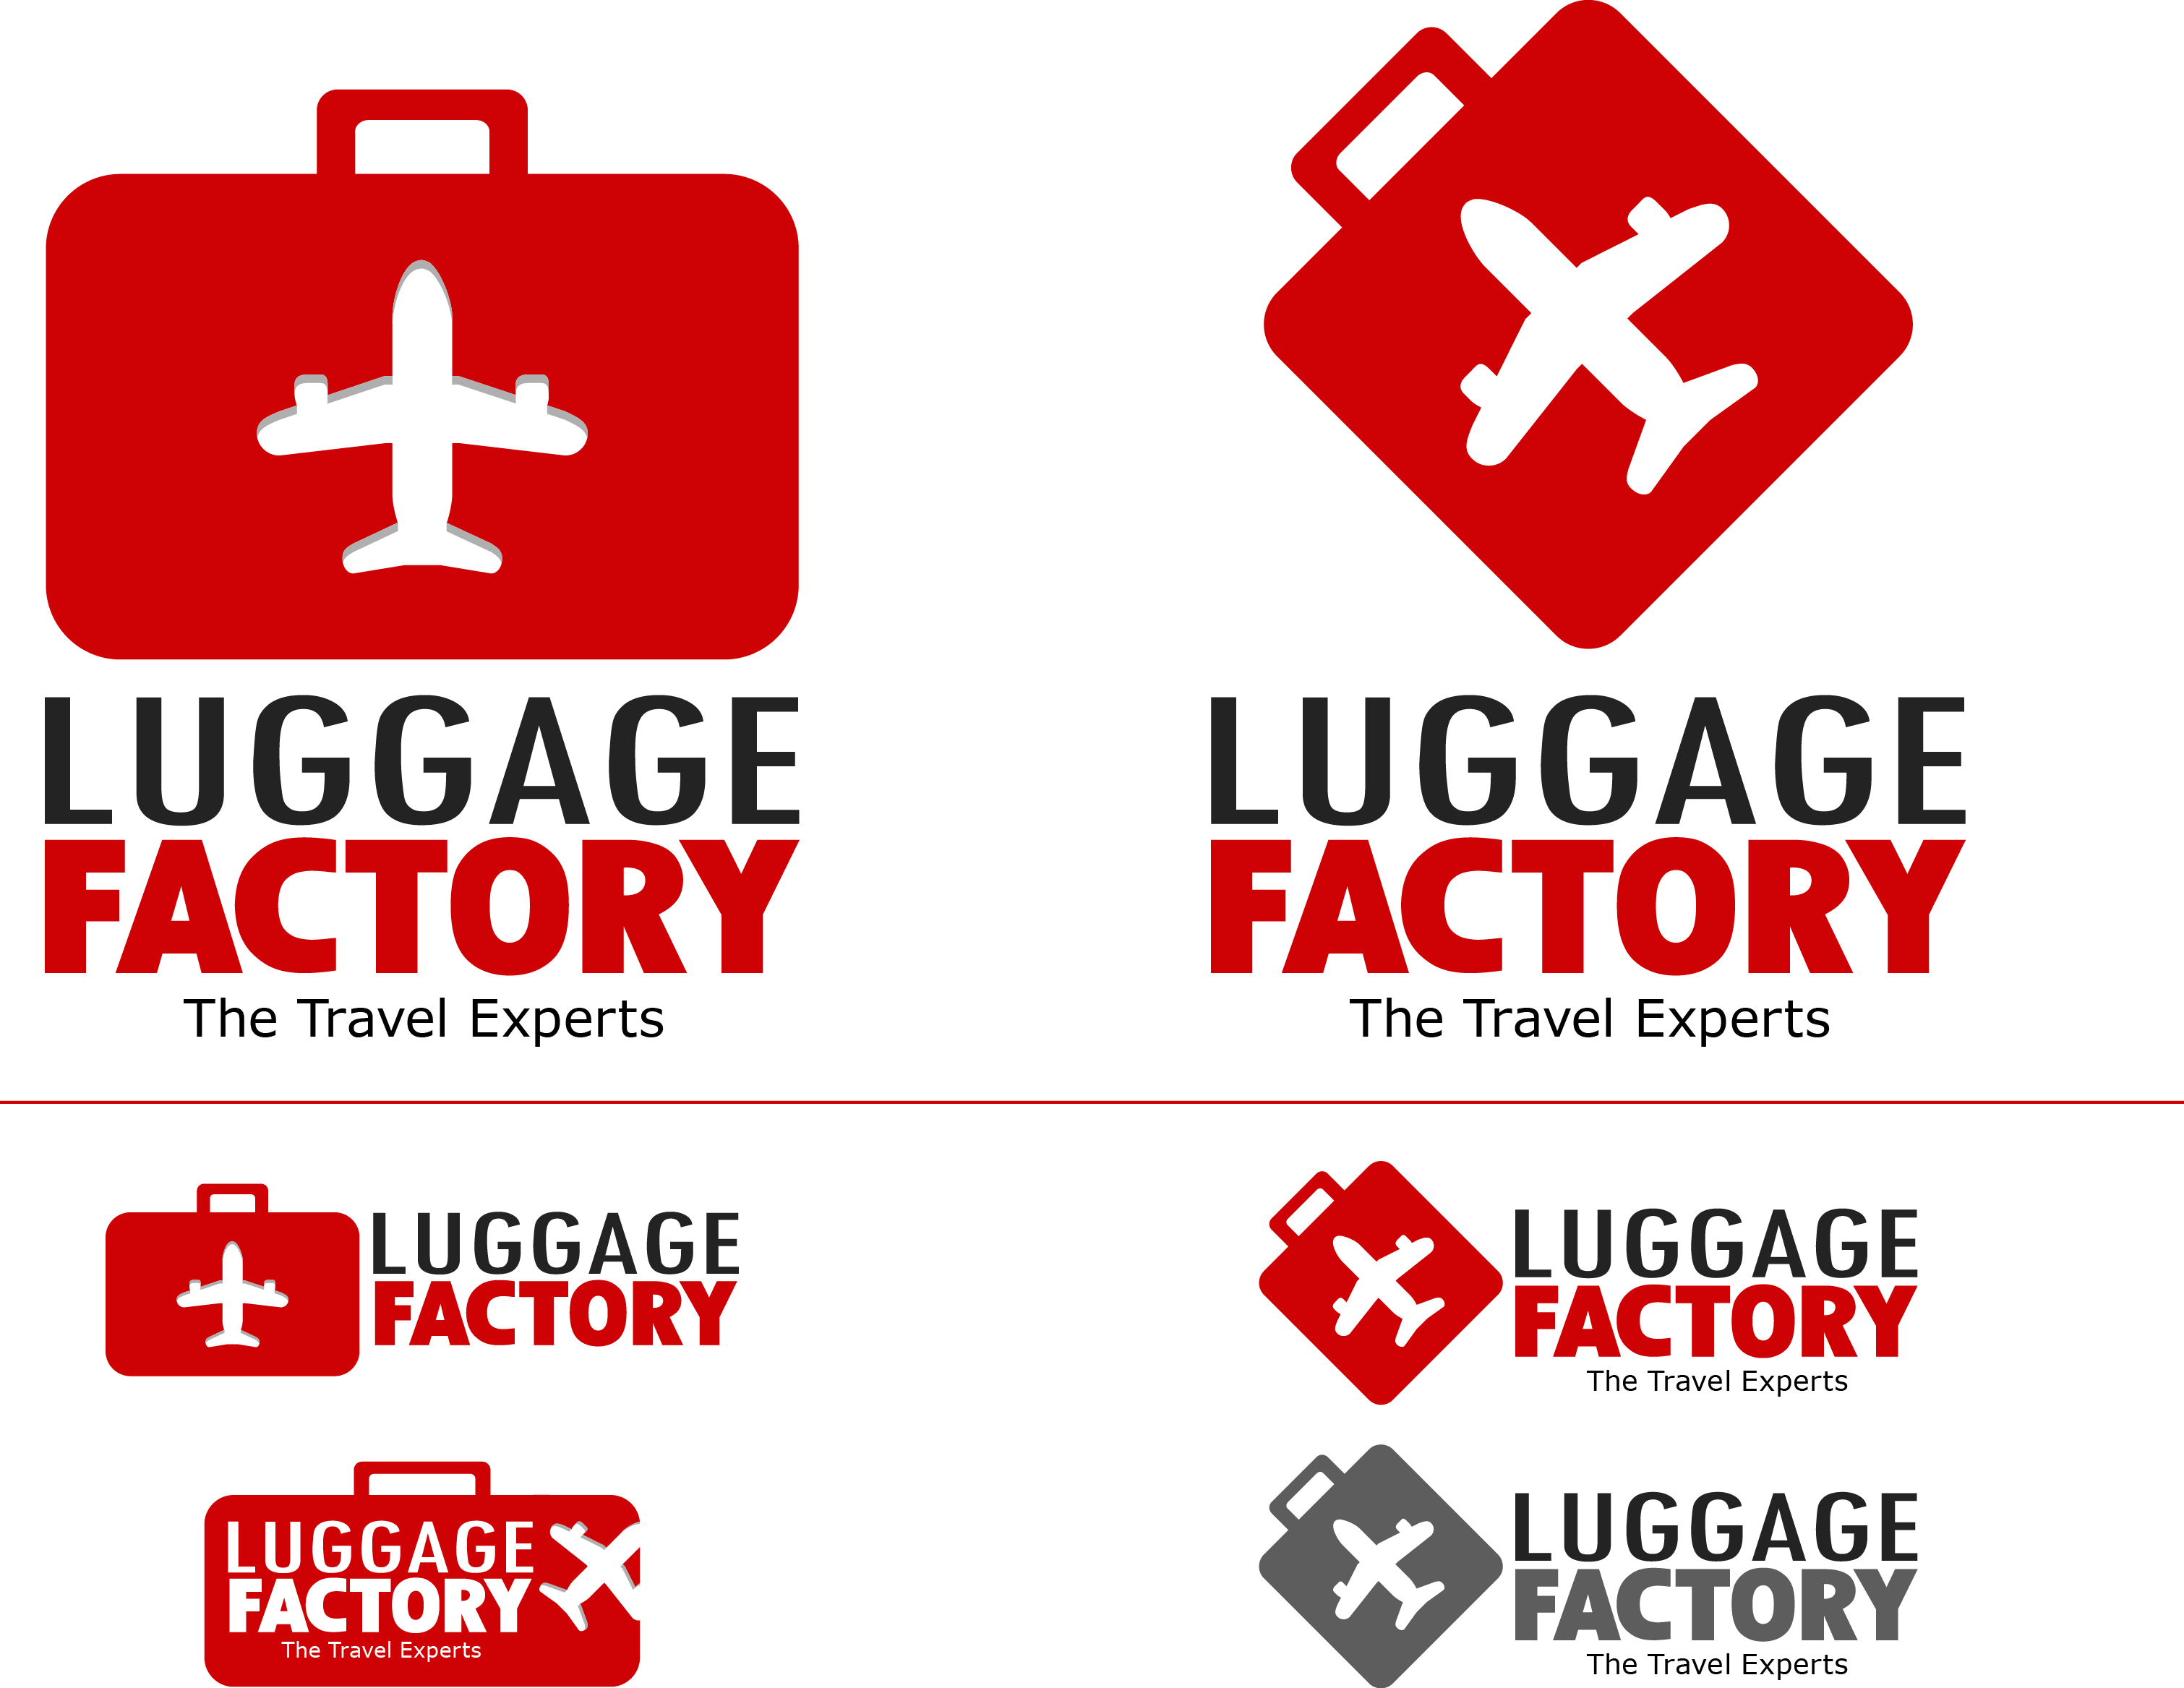 Logo Design by Andrew Velasco - Entry No. 2 in the Logo Design Contest Creative Logo Design for Luggage Factory.